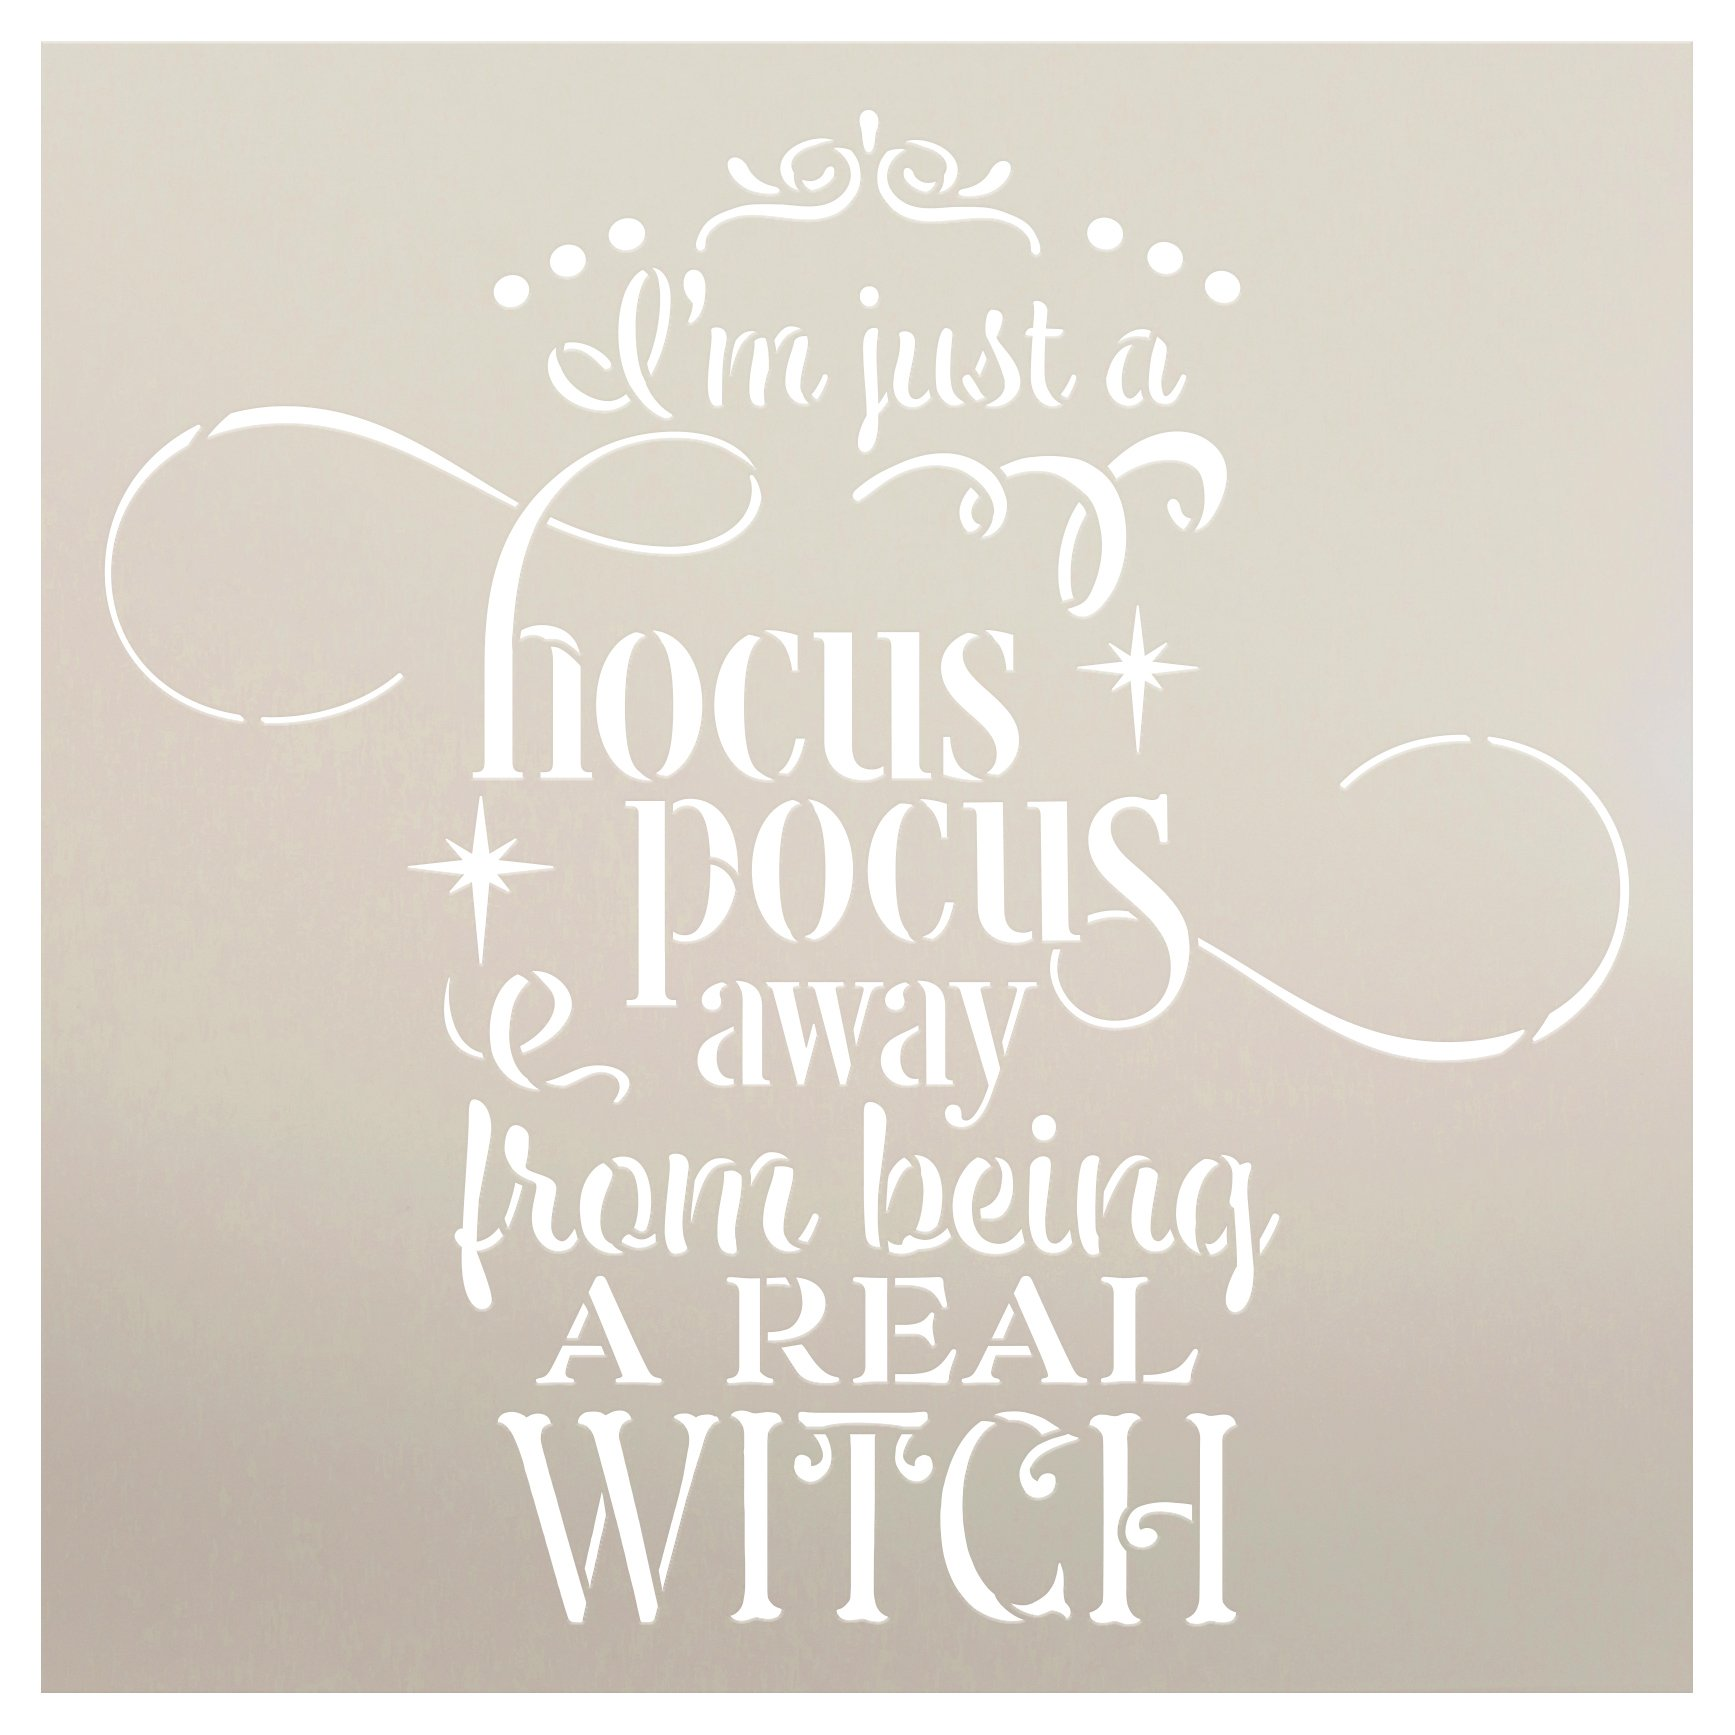 Hocus Pocus Real Witch Stencil by StudioR12   DIY October Halloween Home Decor   Craft & Paint Autumn Wood Sign Reusable Mylar Template   Select Size